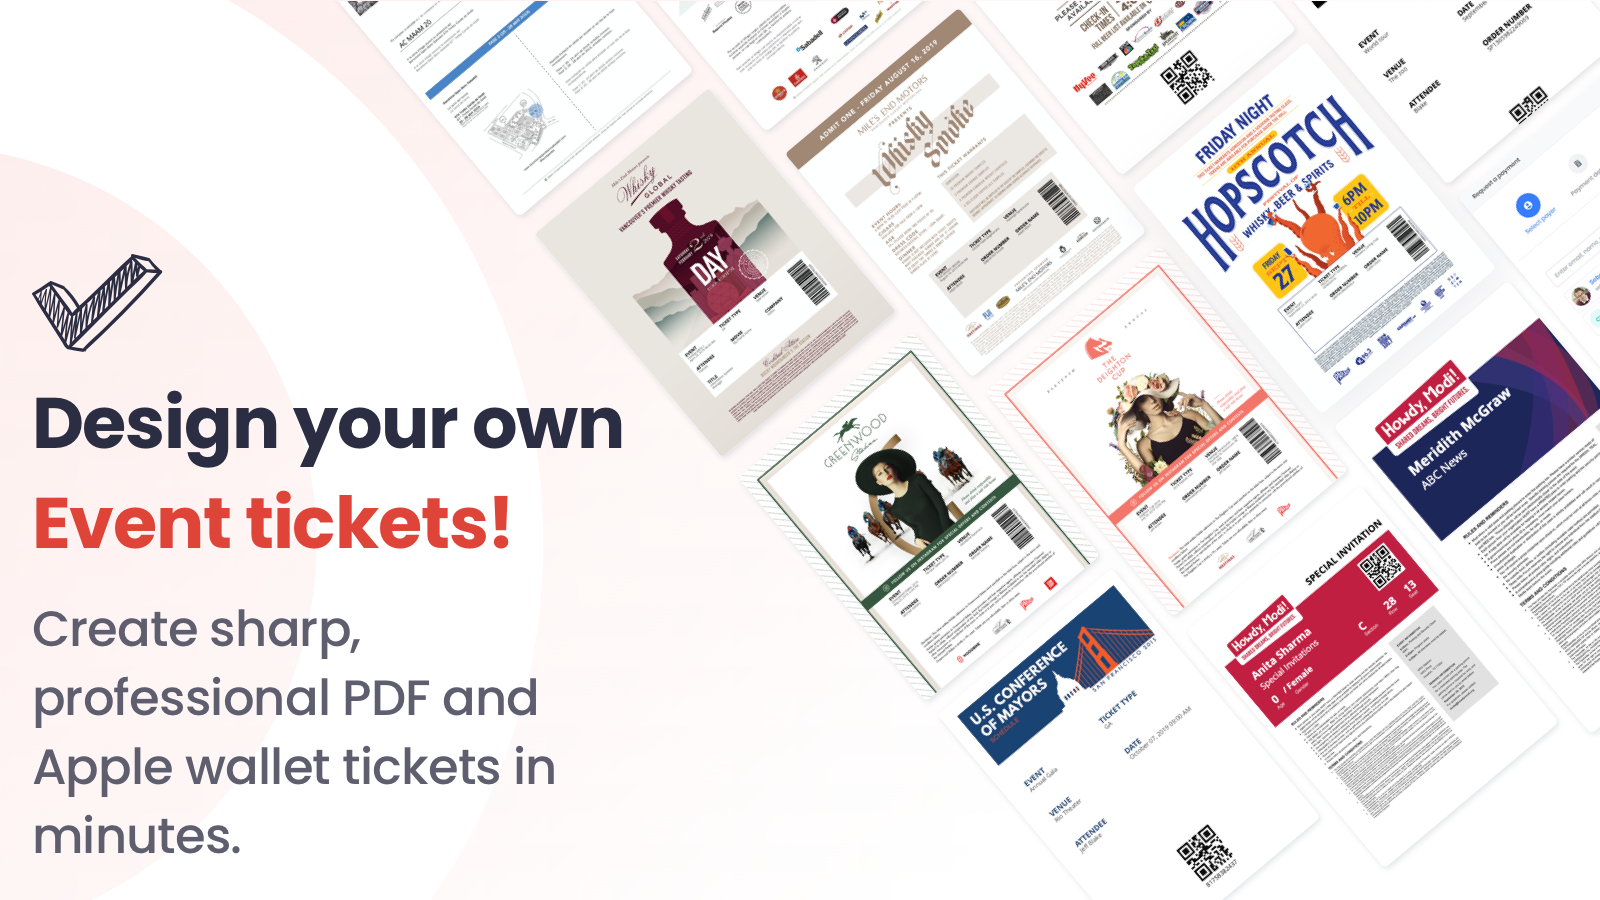 Design and brand your own PDF and Apple wallet tickets